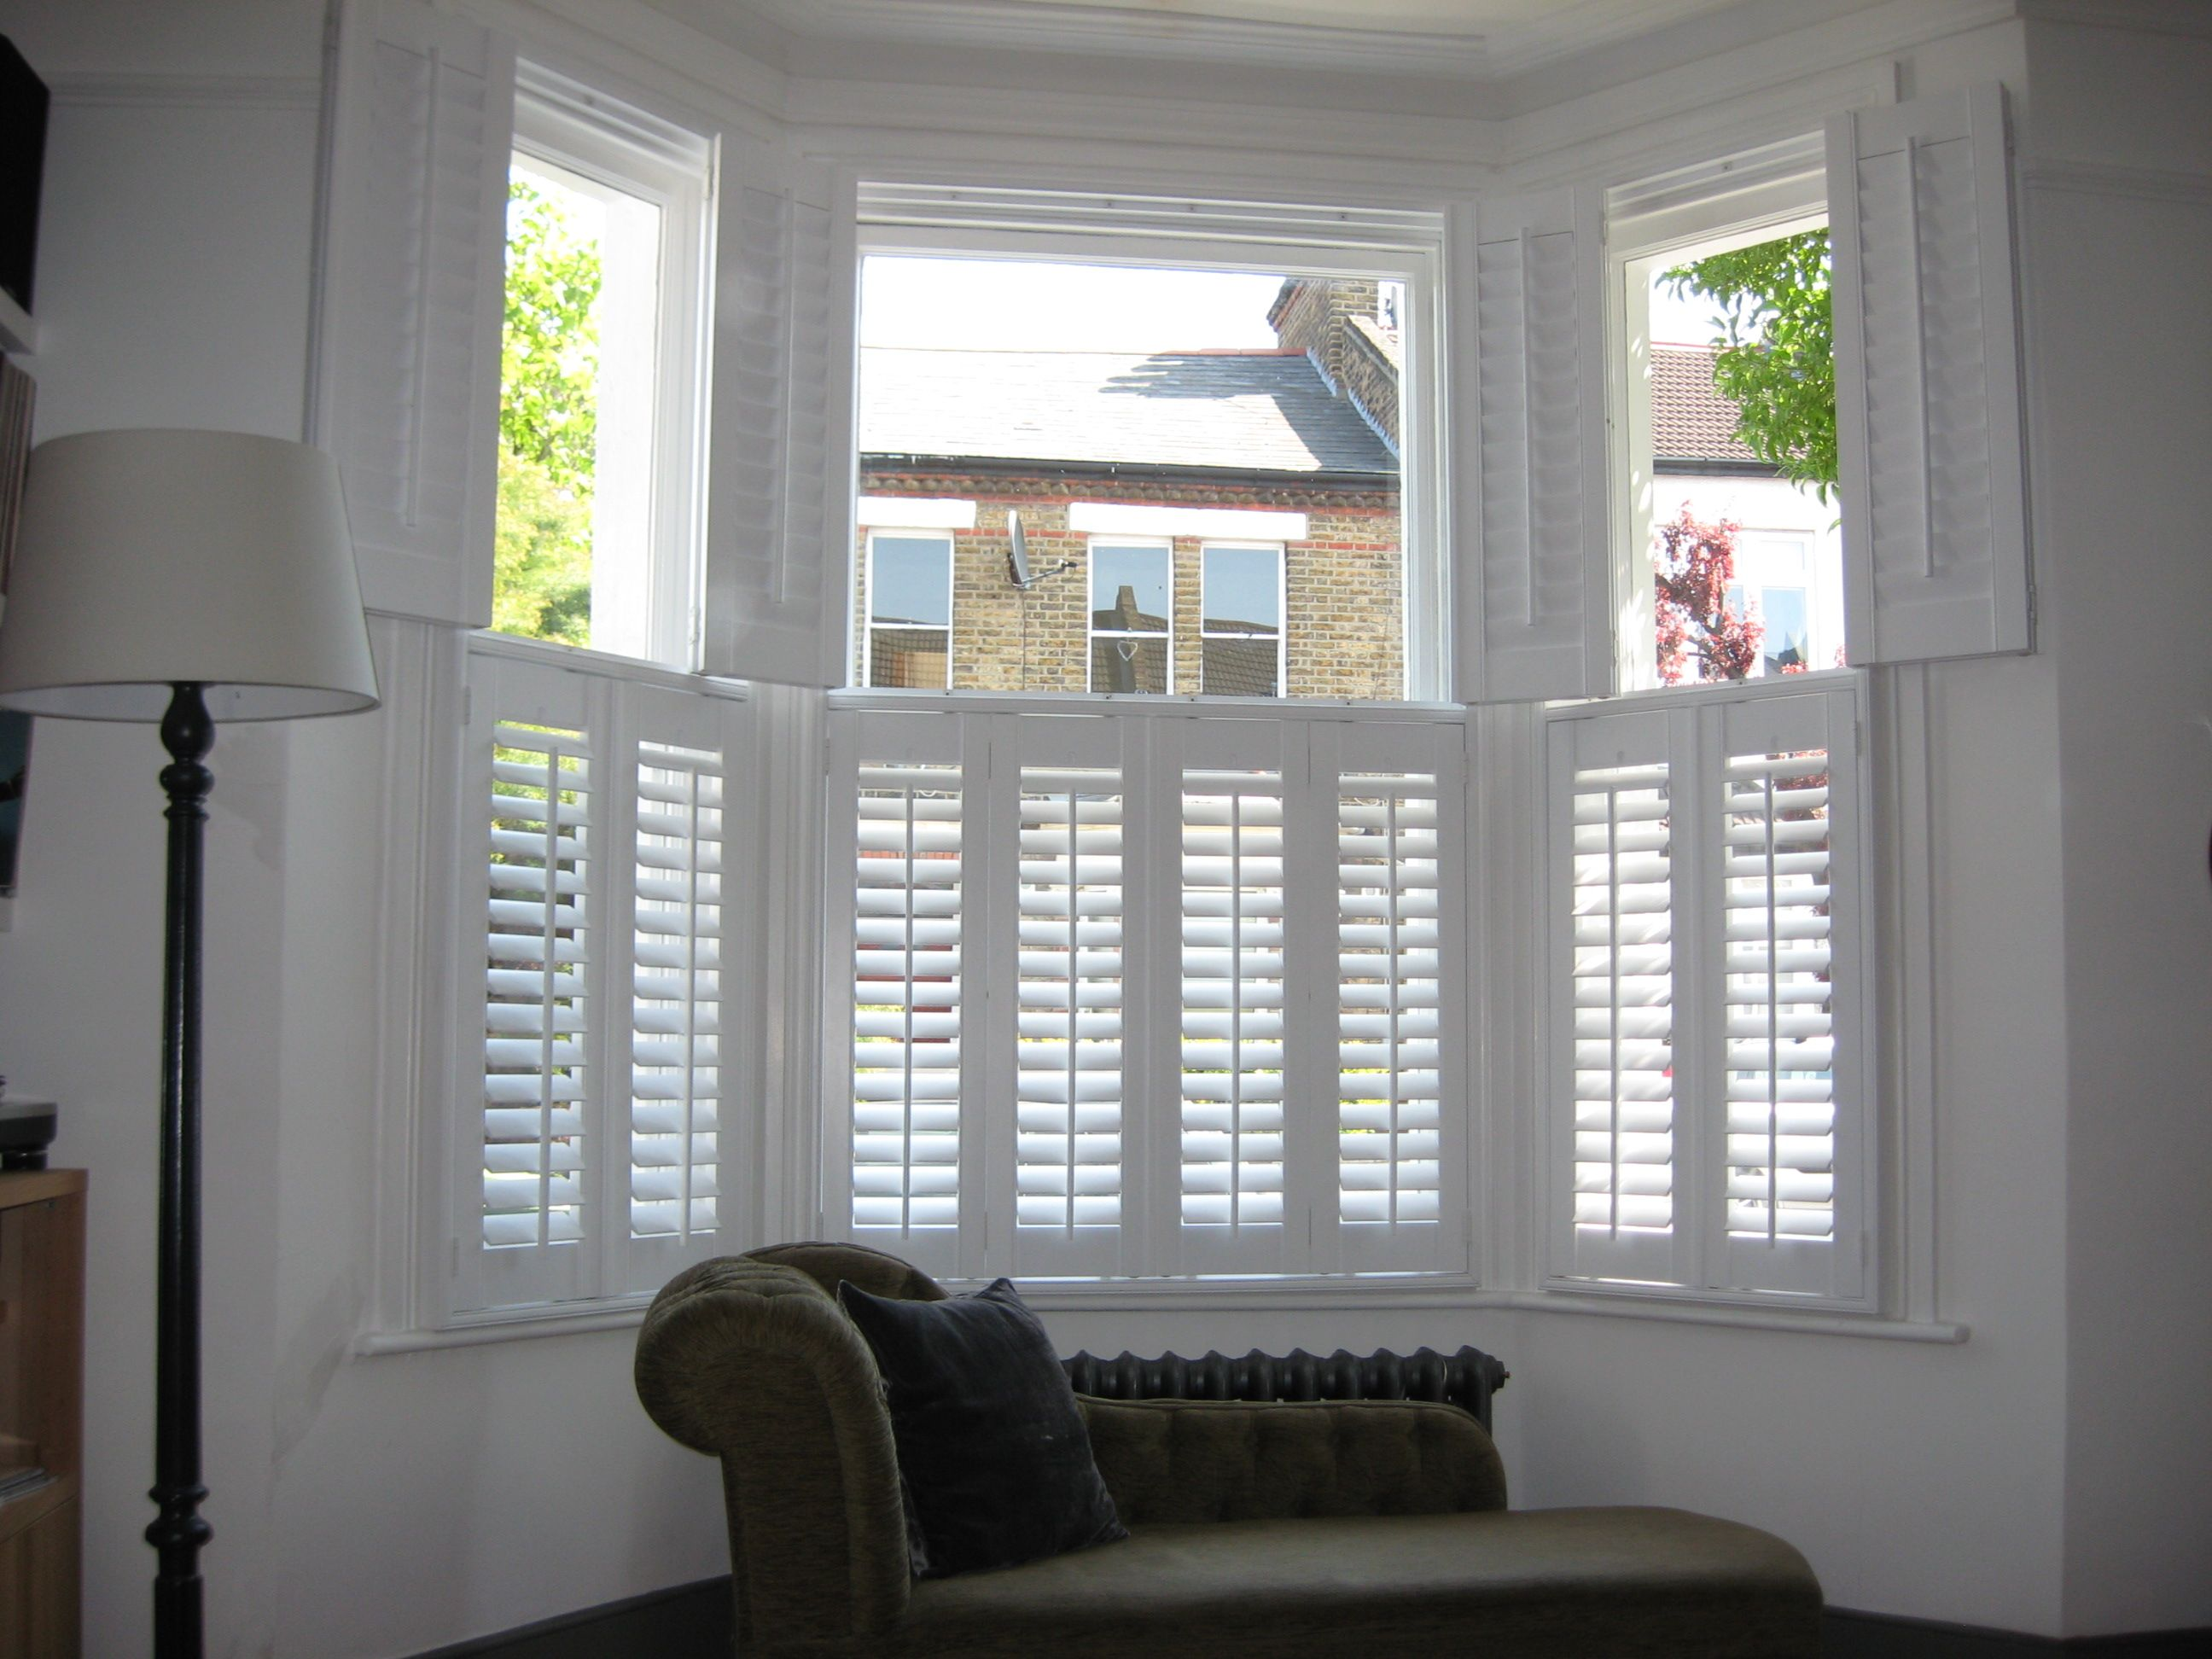 Bay window blinds - Remarkable Windows Bay Design And Accessories Inspiration Photos Inspiring White Plantation